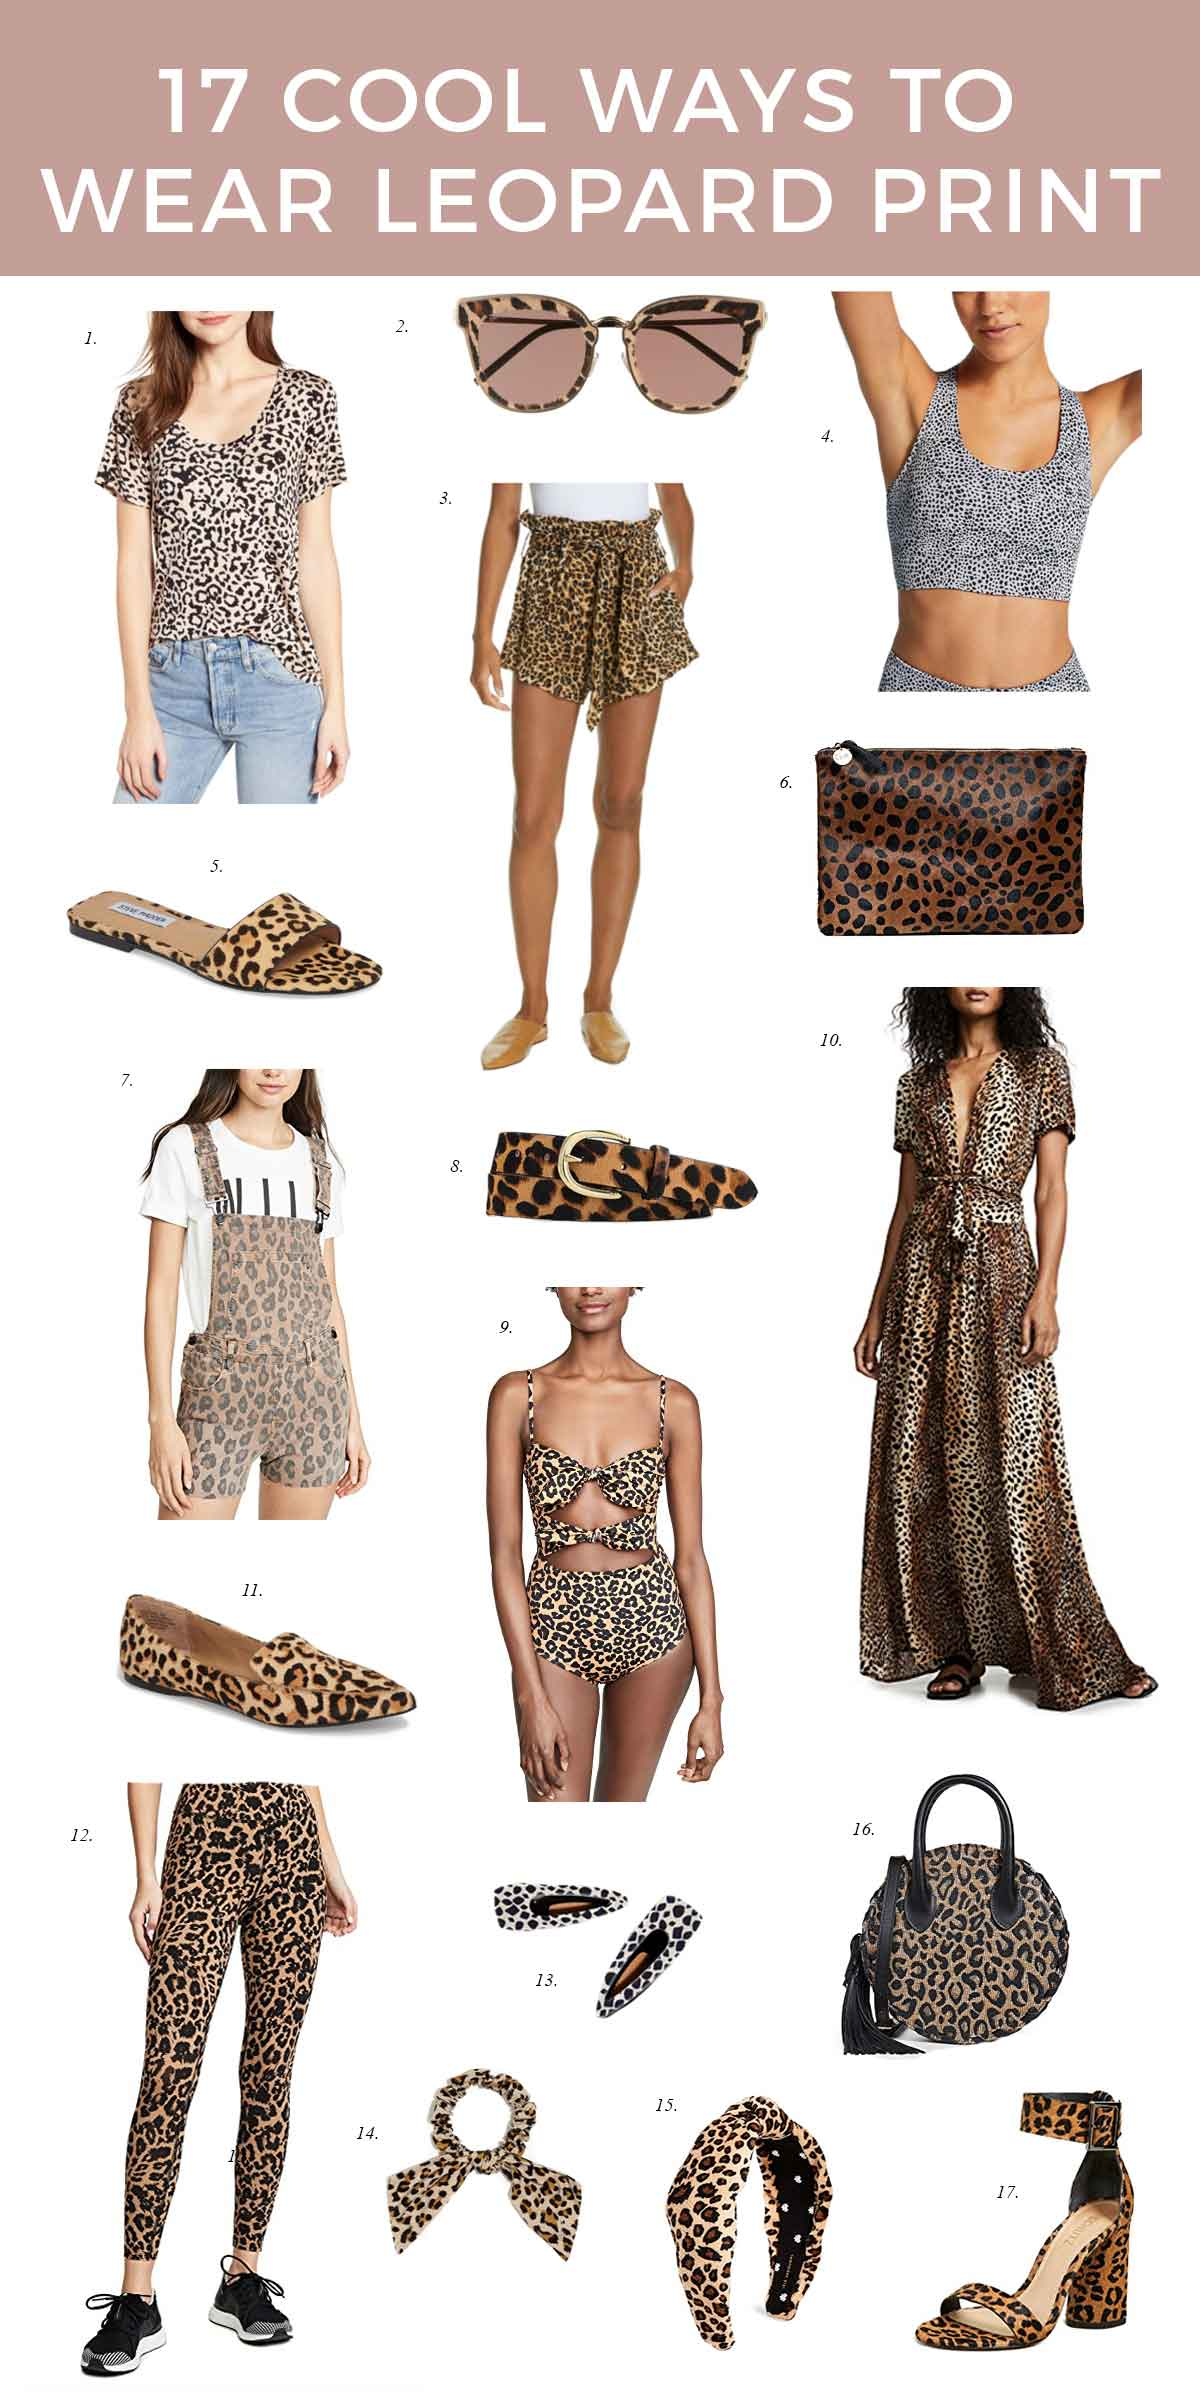 Cool-ways-to-wear-leopard-print-outfit-ideas-pinterest-leopard-outfits-fashion-blogger